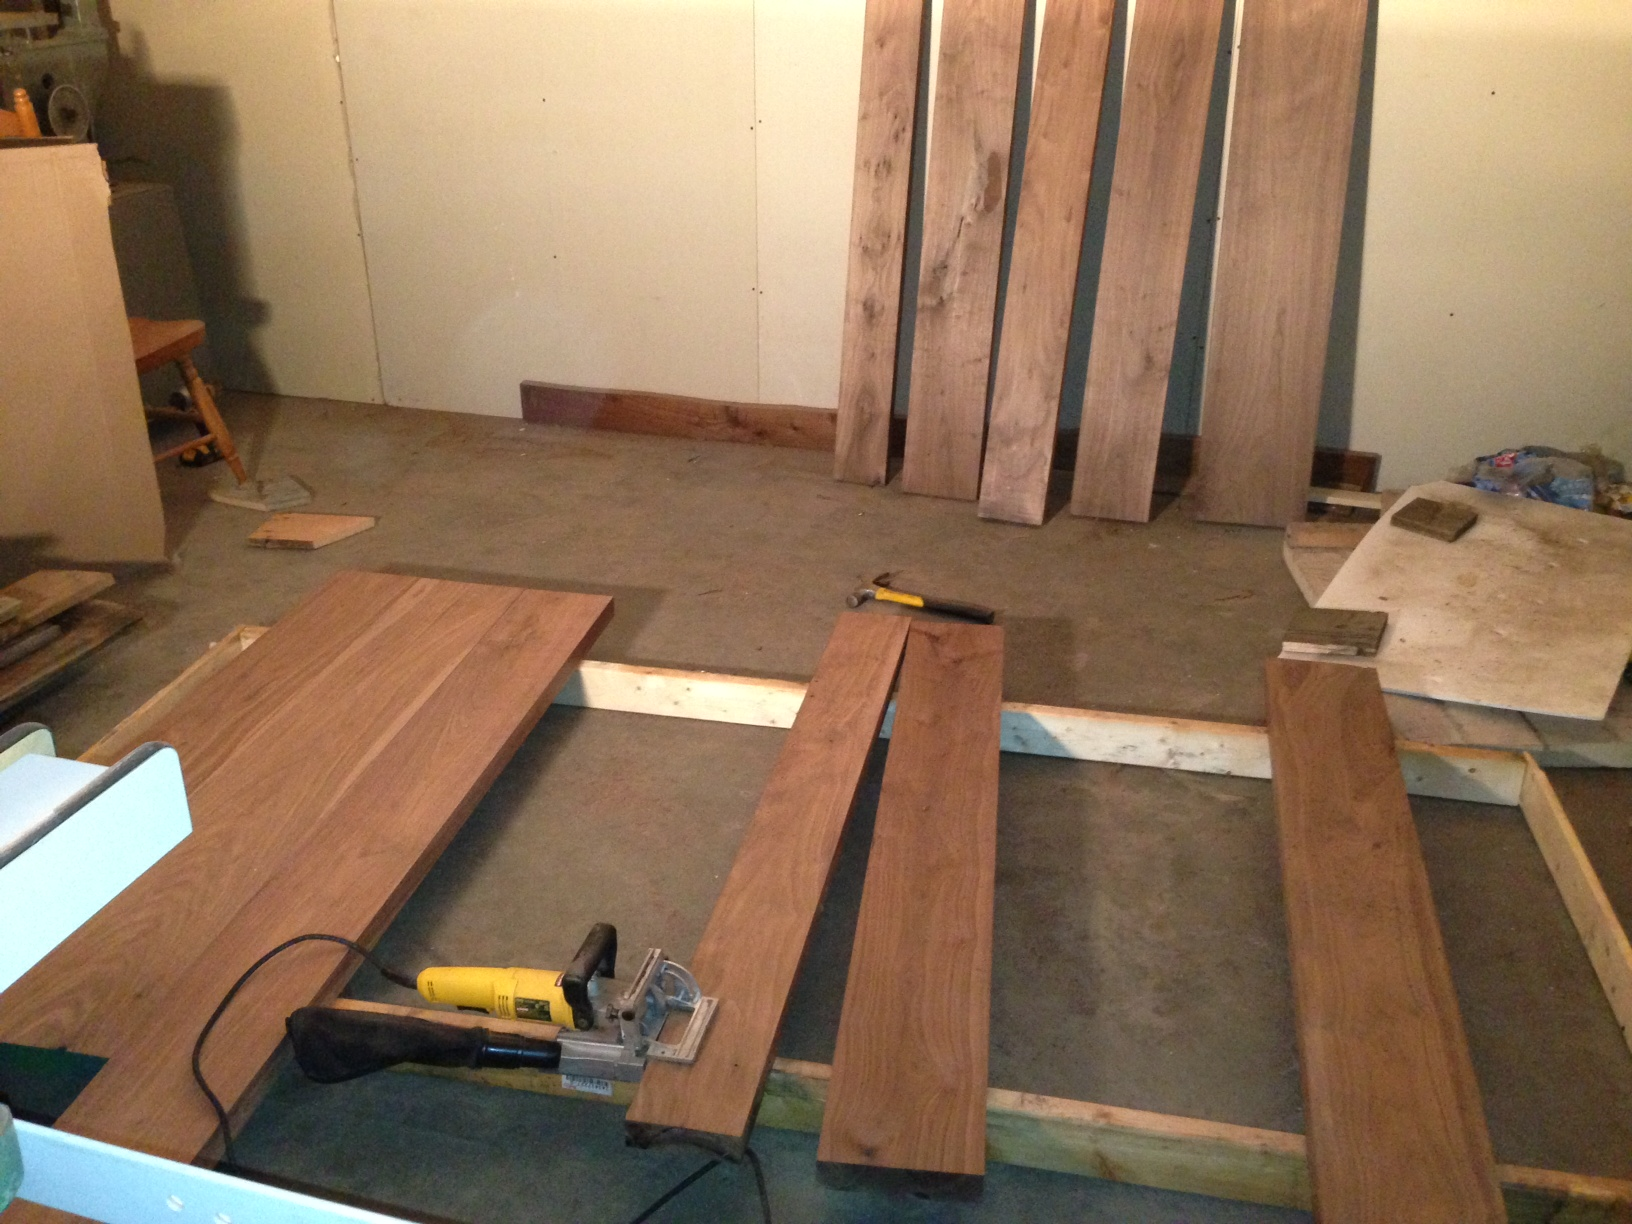 Walnut door in the making.